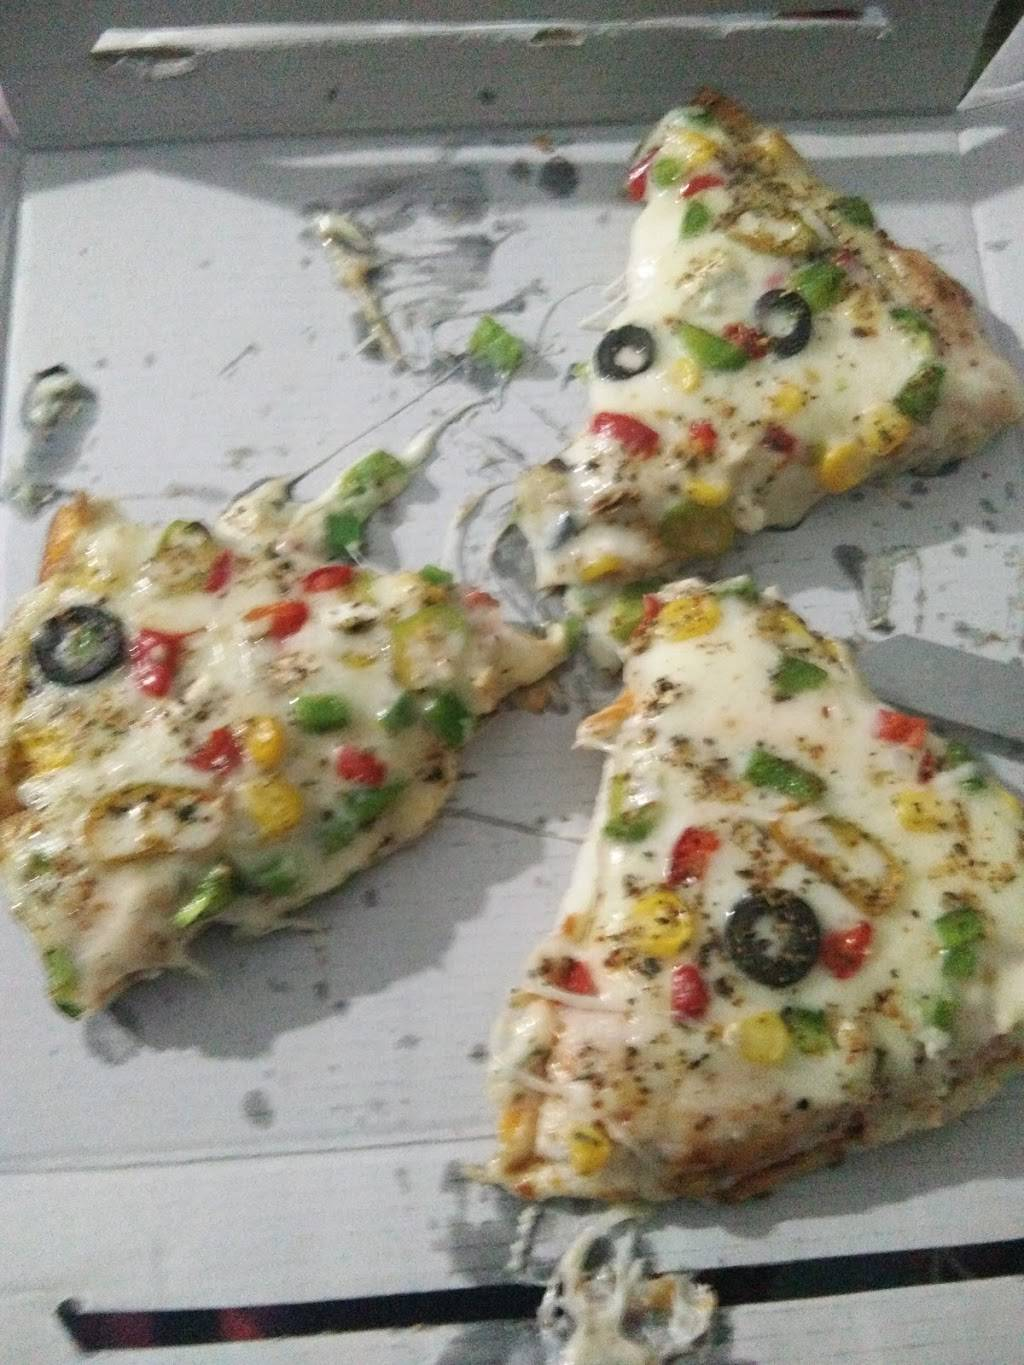 Spicy Pizza   meal delivery   43-22 43rd Ave, Sunnyside, NY 11104, USA   7187066655 OR +1 718-706-6655